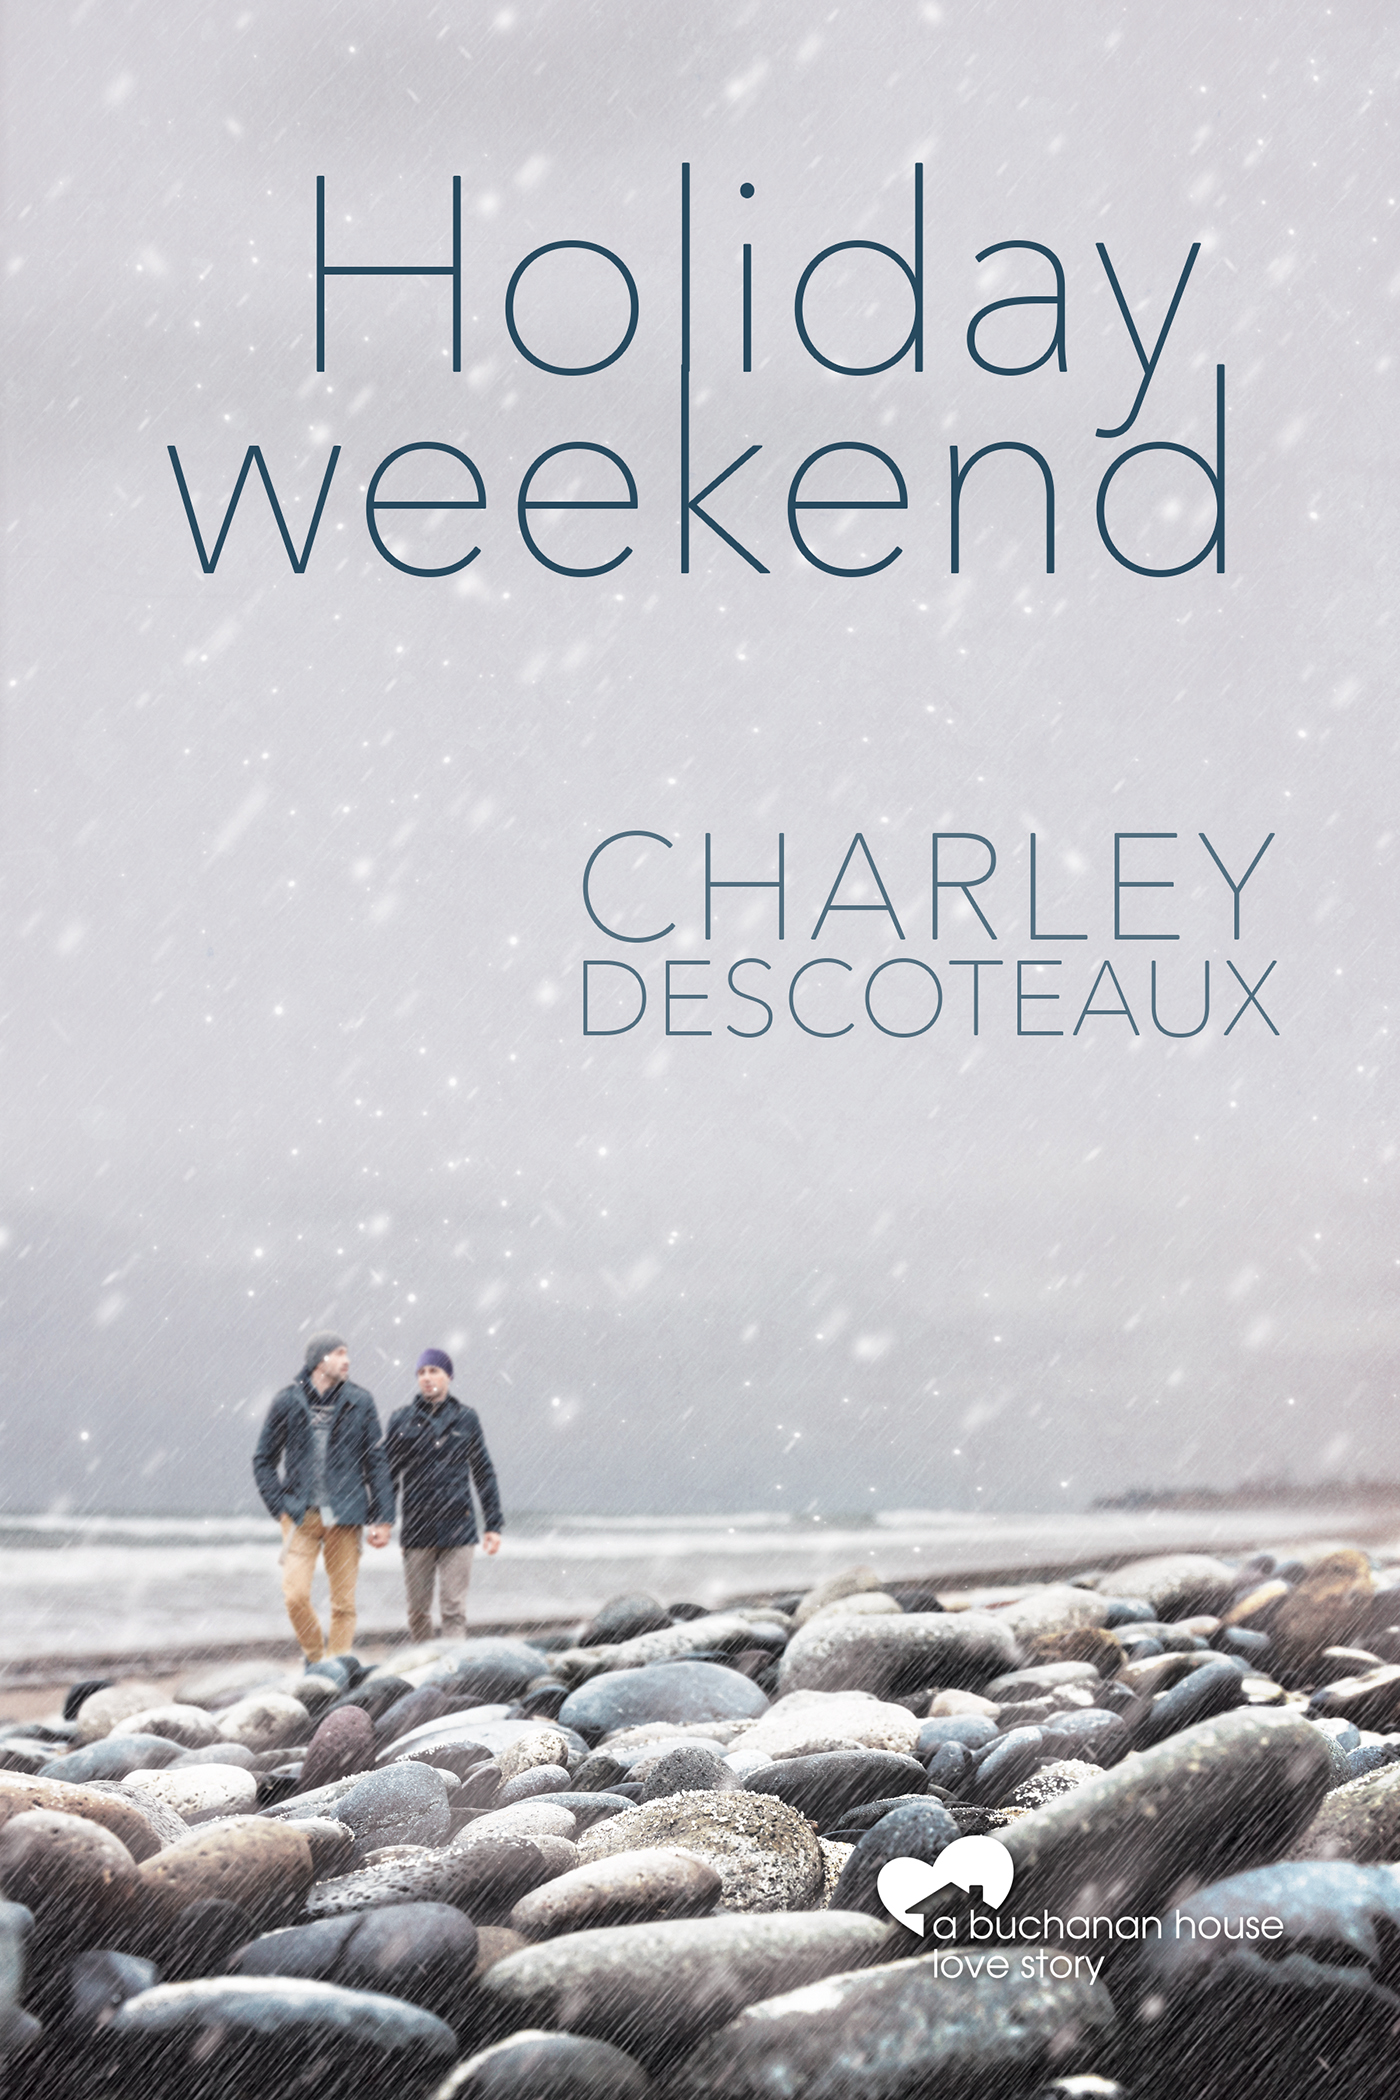 Guest Post and Giveaway: Holiday Weekend by Charley Descoteaux